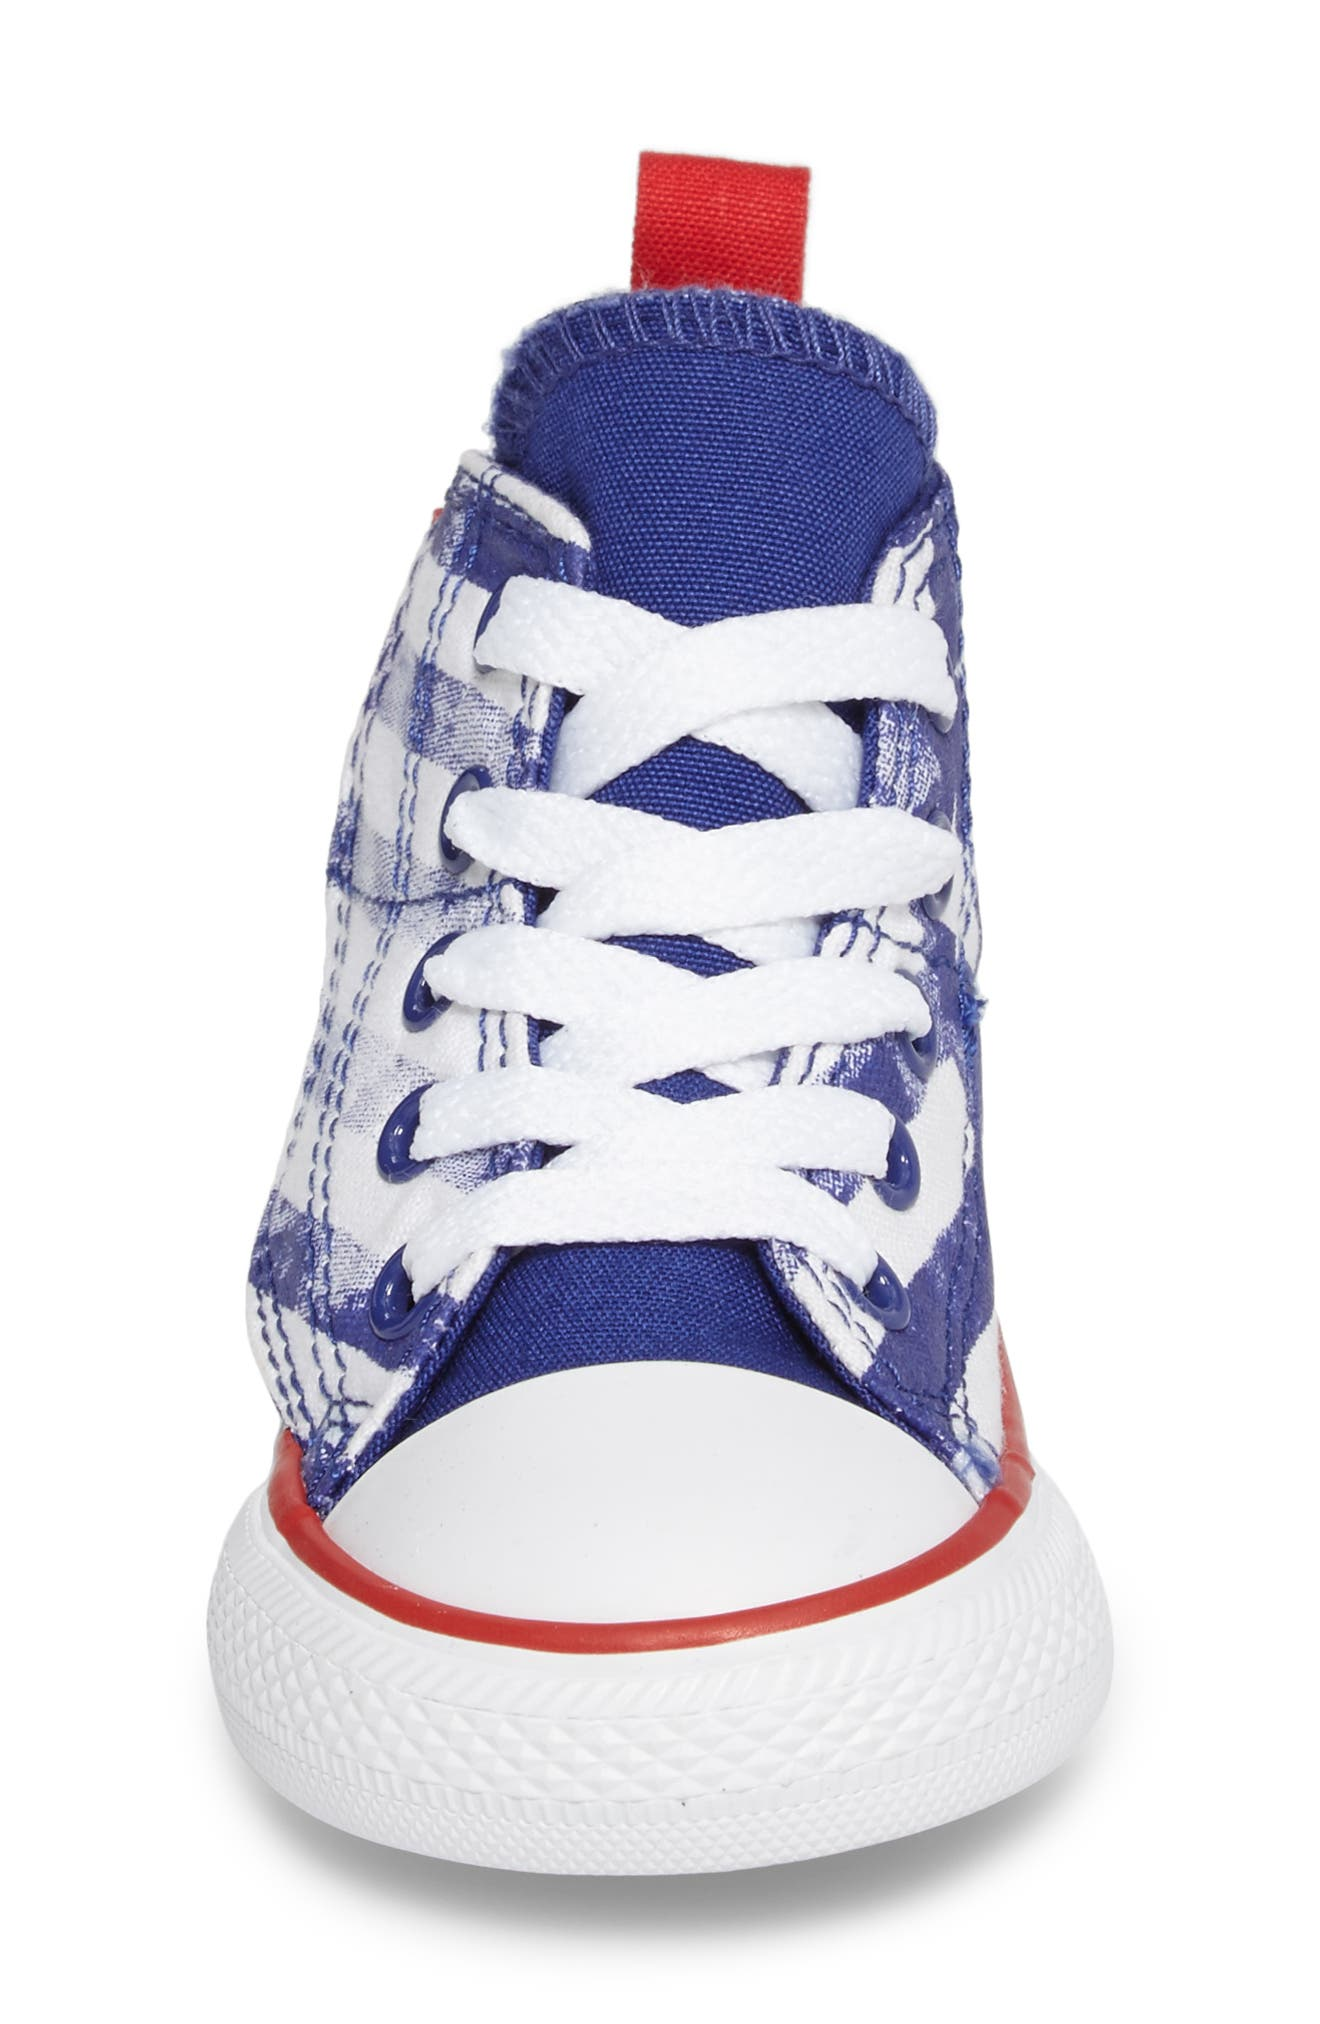 Chuck Taylor<sup>®</sup> All Star<sup>®</sup> 'Simple Step' High Top Sneaker,                             Alternate thumbnail 4, color,                             400